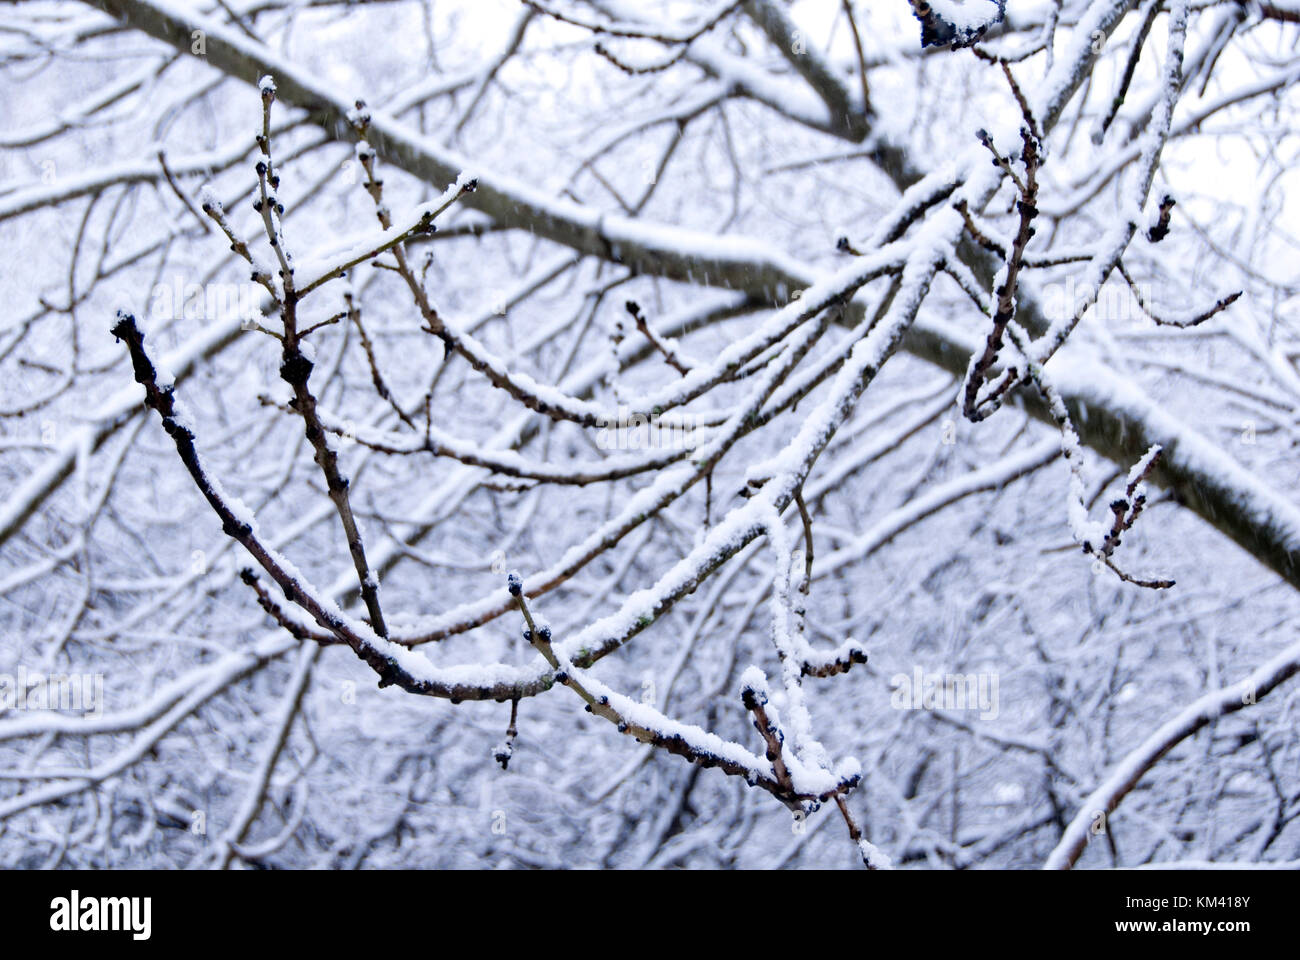 Ash tree branch dusted with snow as a blizzard falls in Sheffield, UK - Stock Image